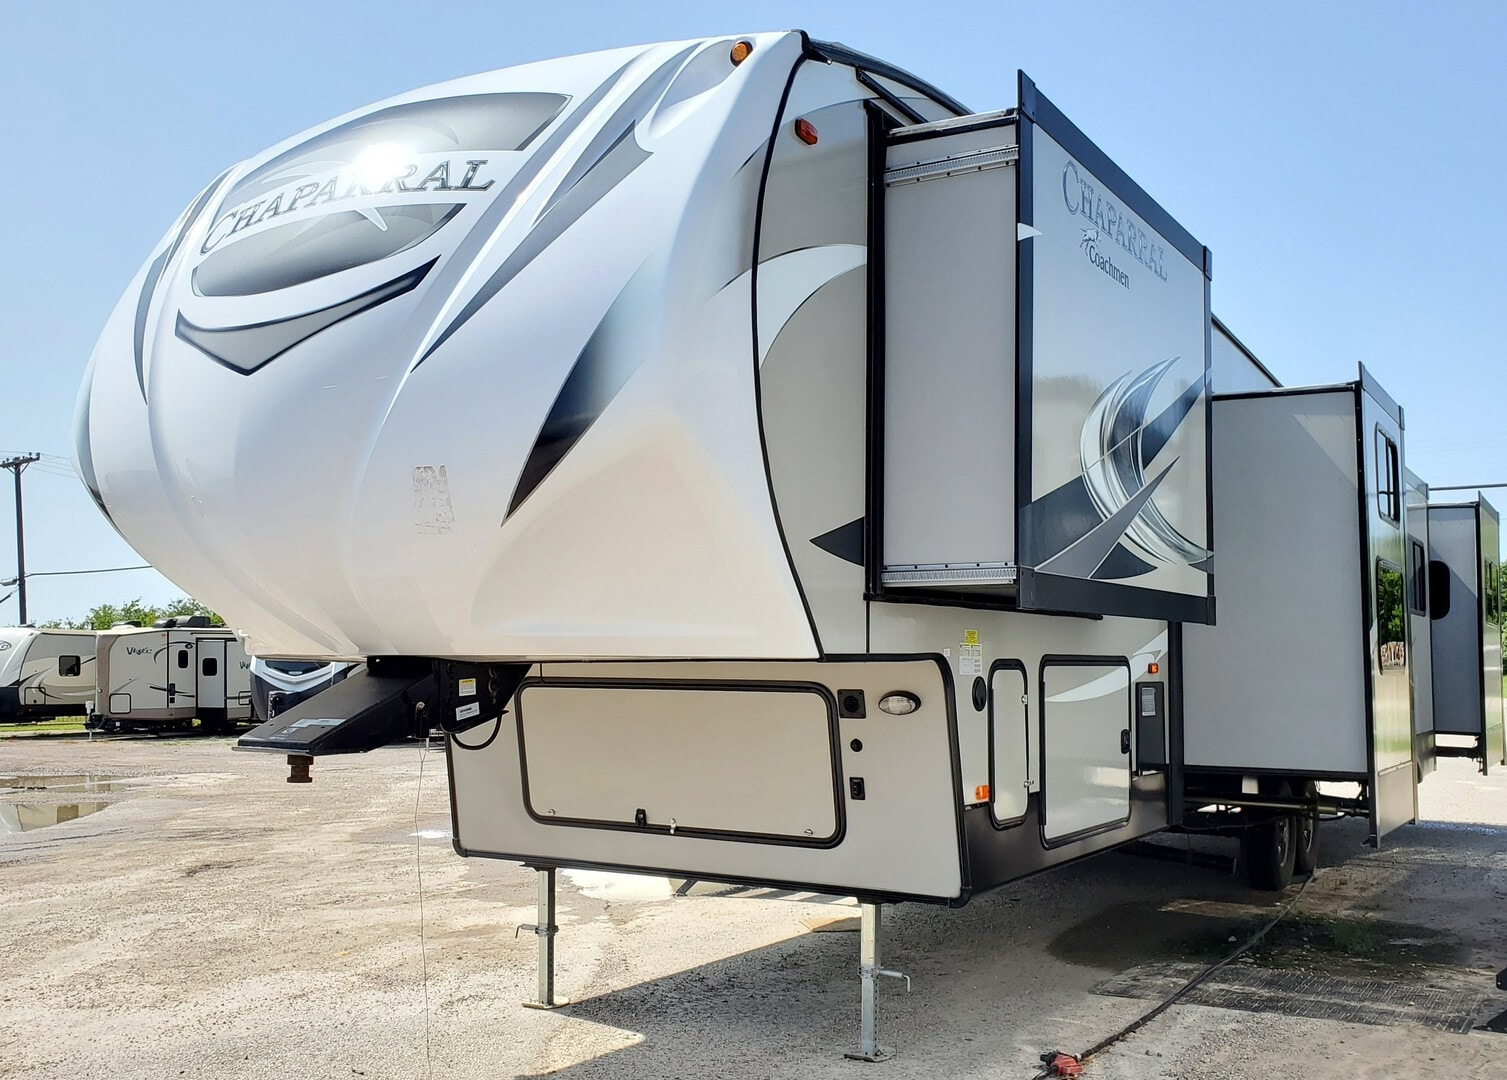 Used, 2019, Coachmen, Chaparral 373MBRB, Fifth Wheels